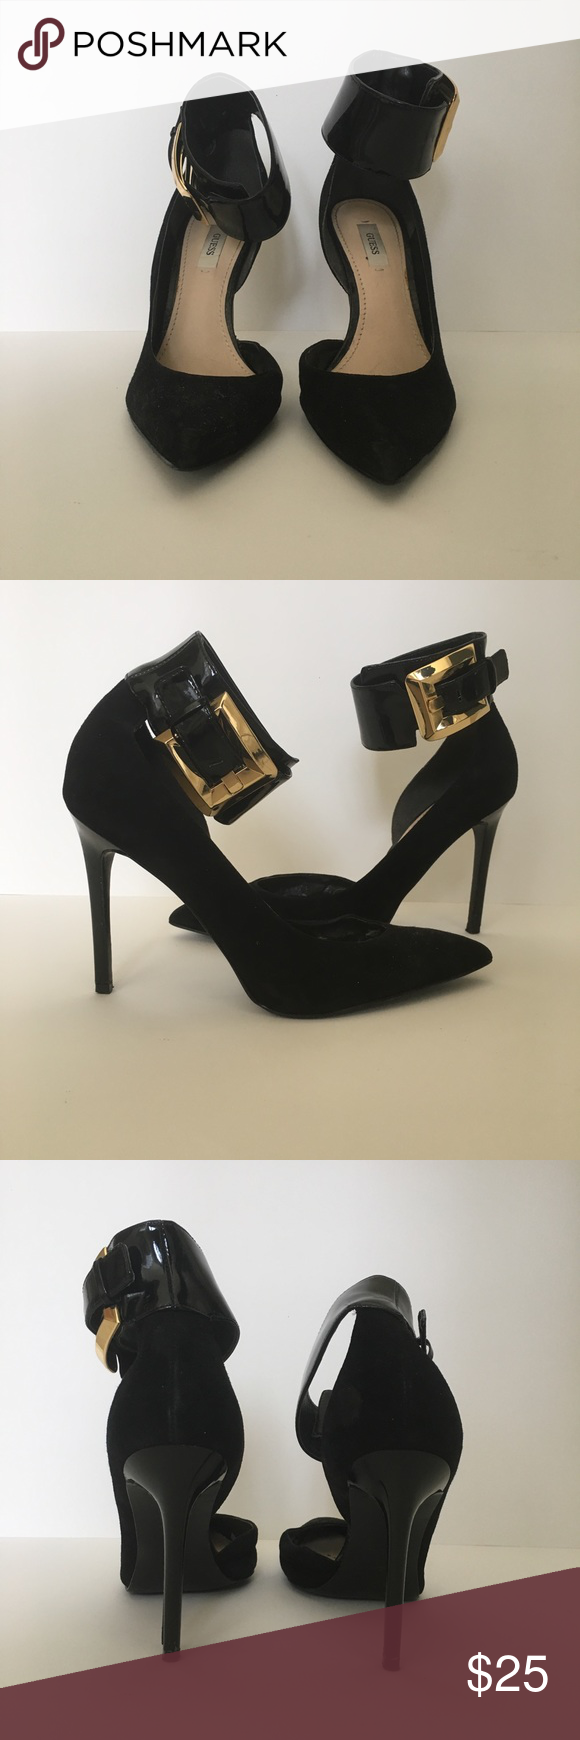 Guess black suede heel with patent